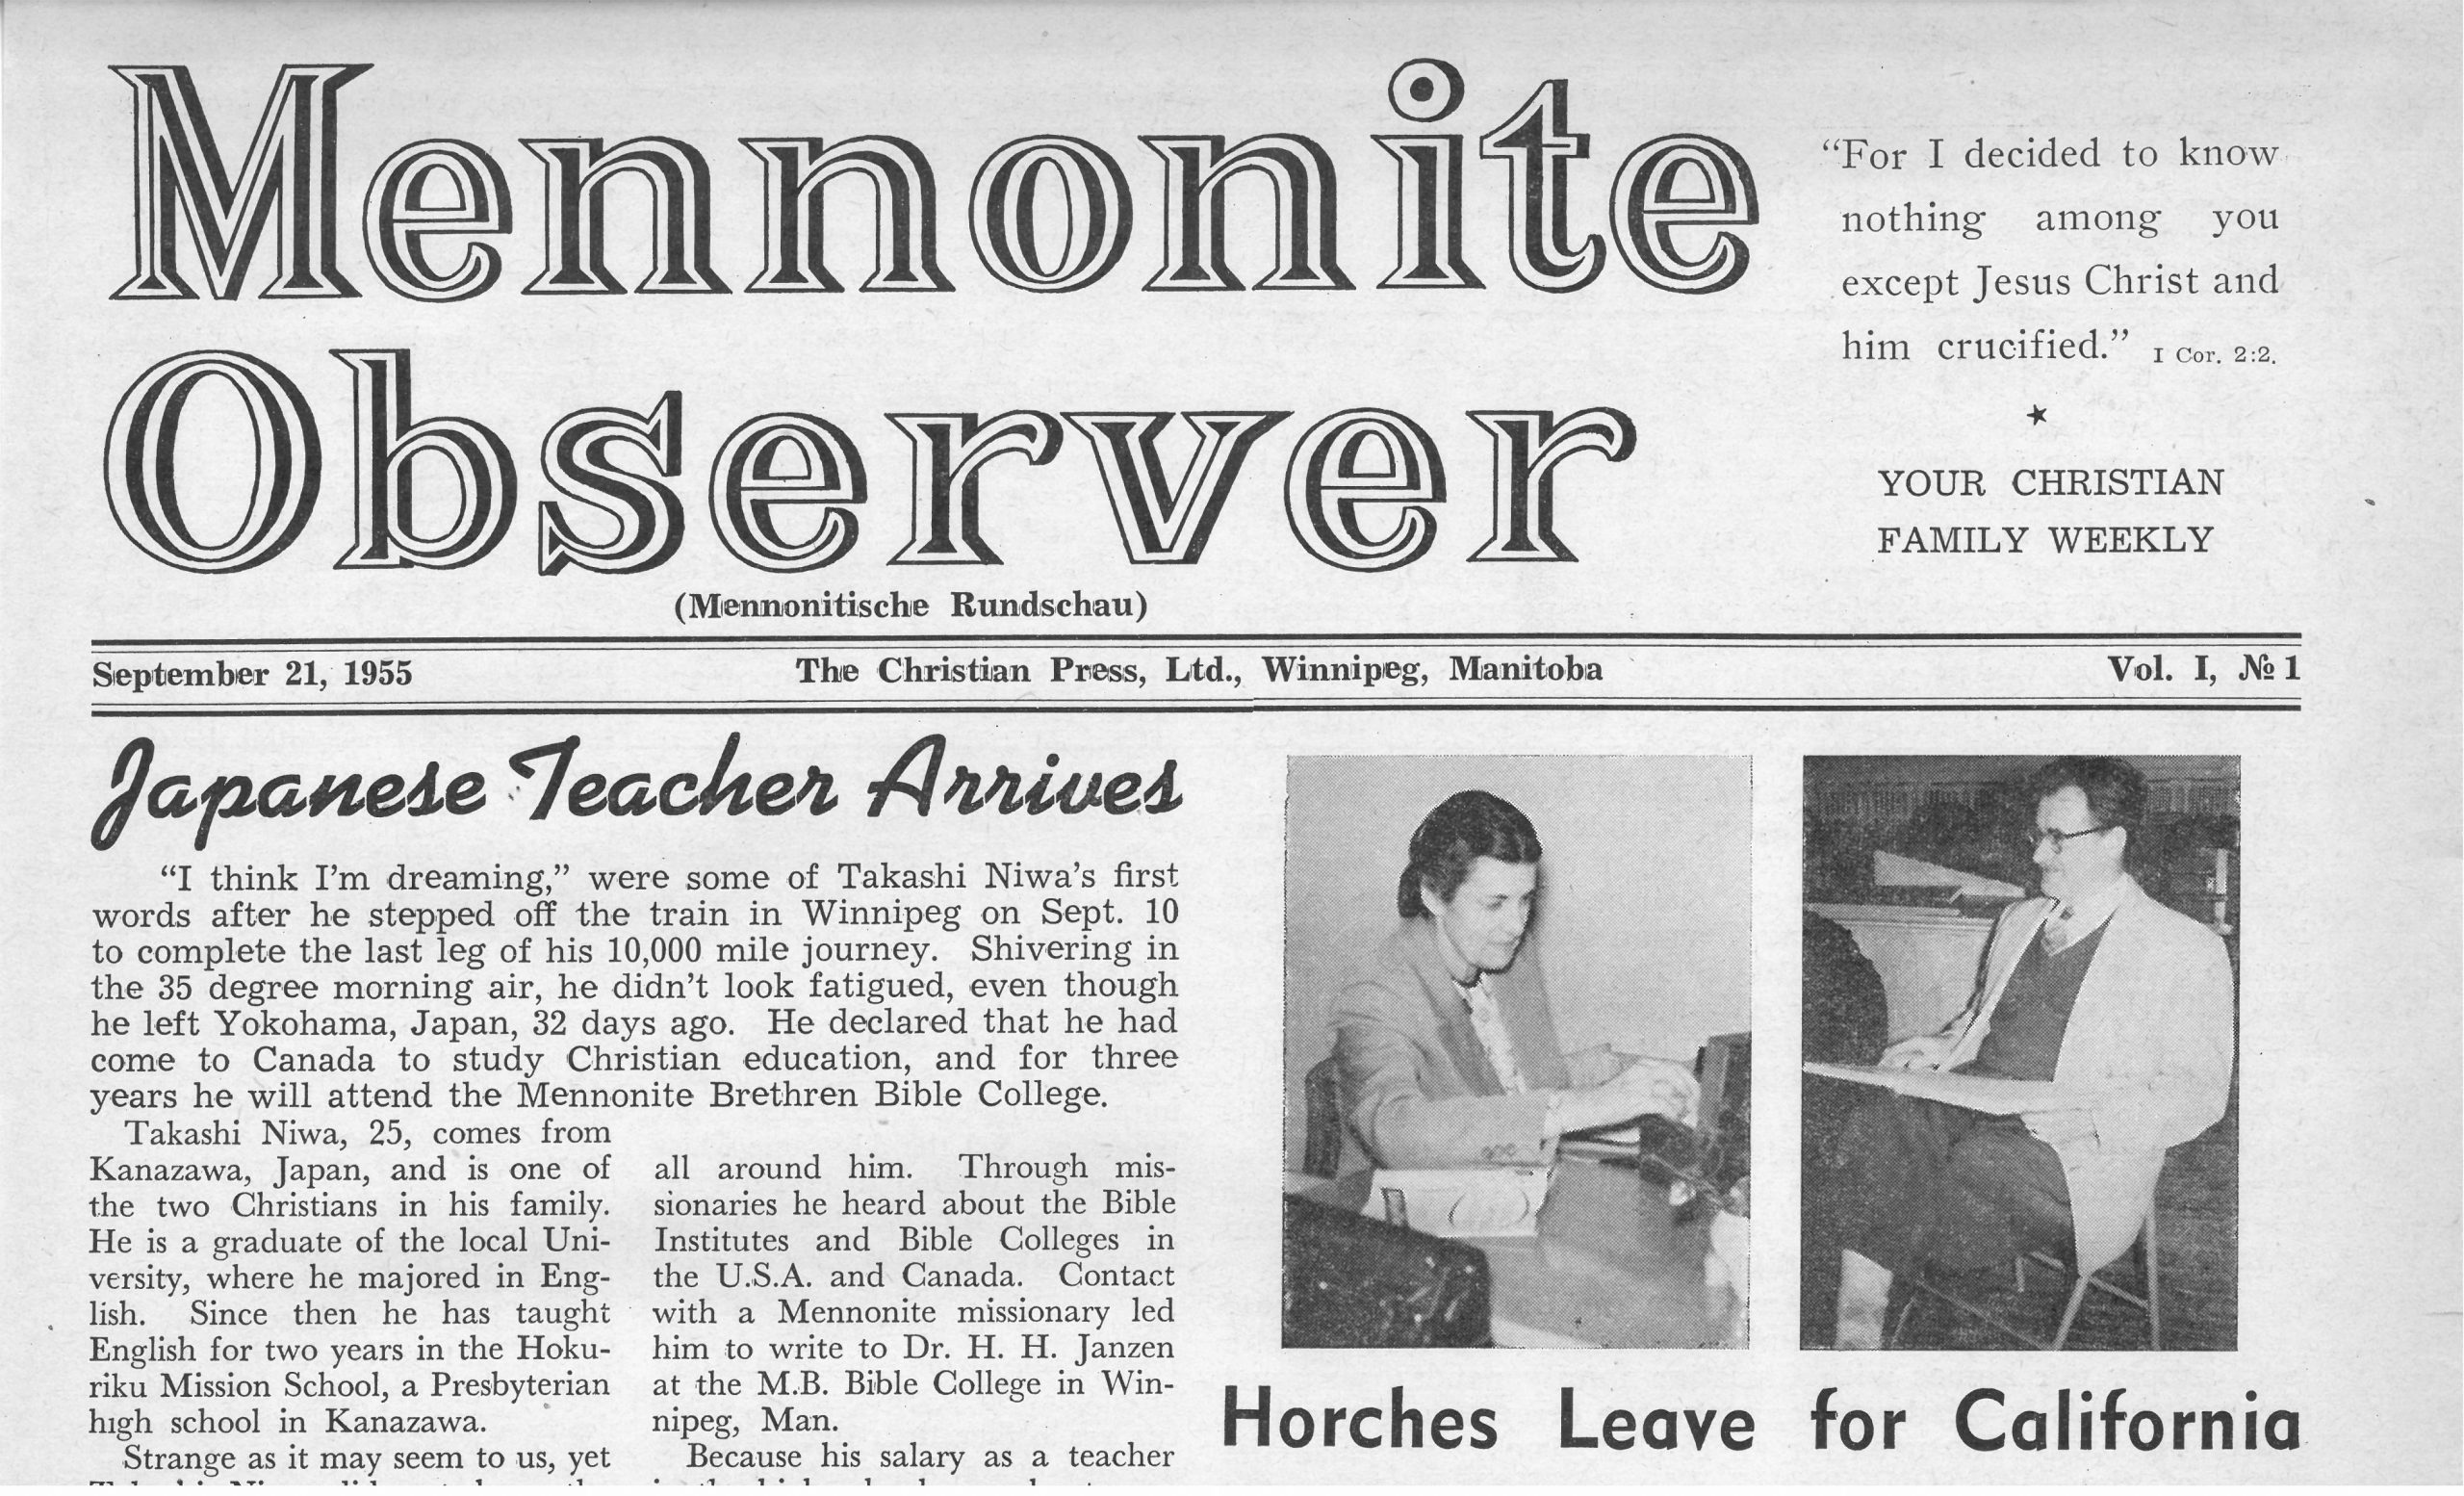 1950s Mennonite newspaper now viewable online